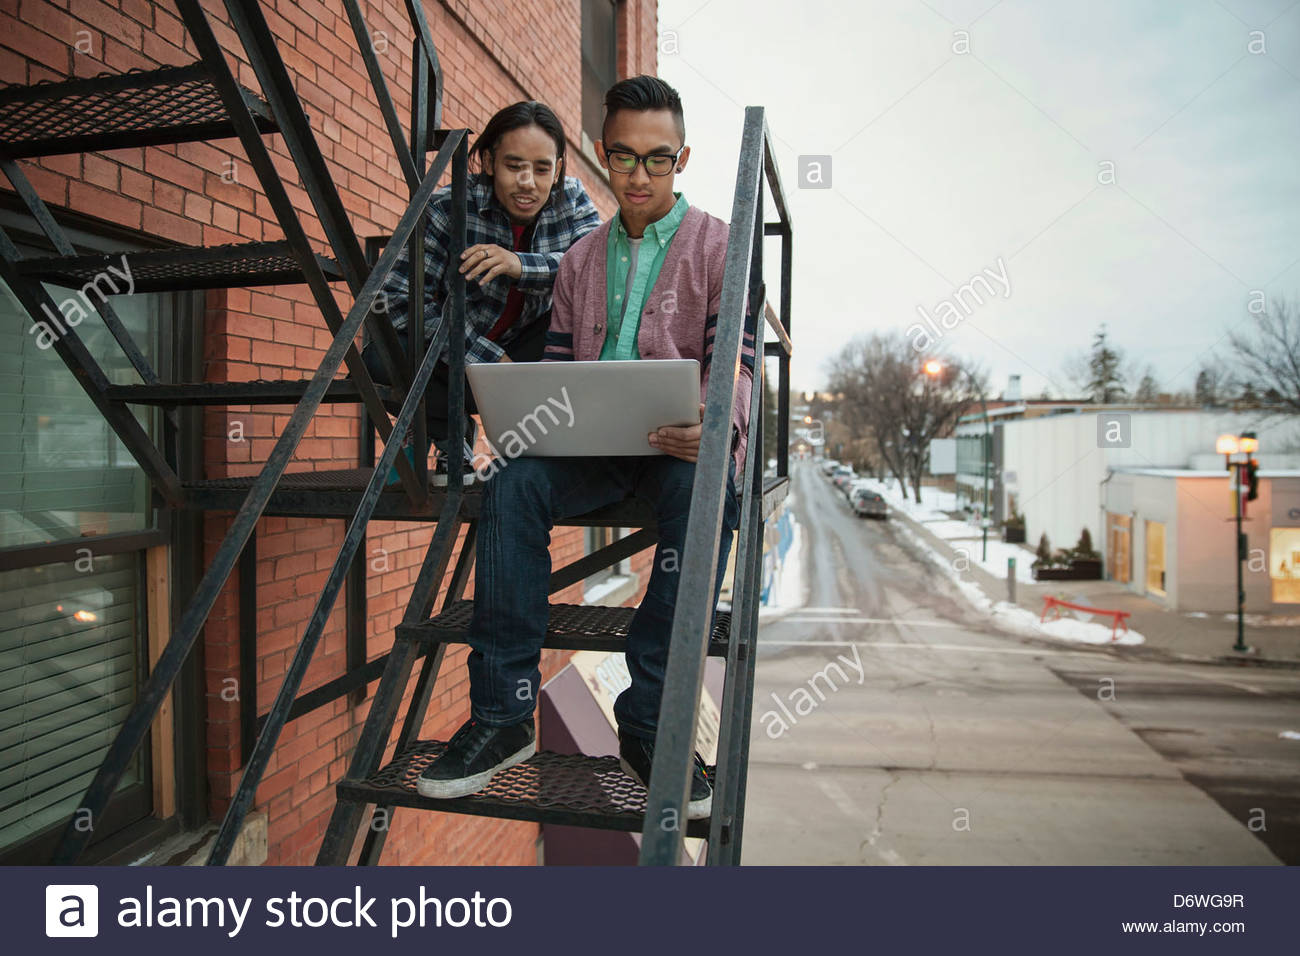 Young male friends using laptop on fire exit staircase - Stock Image